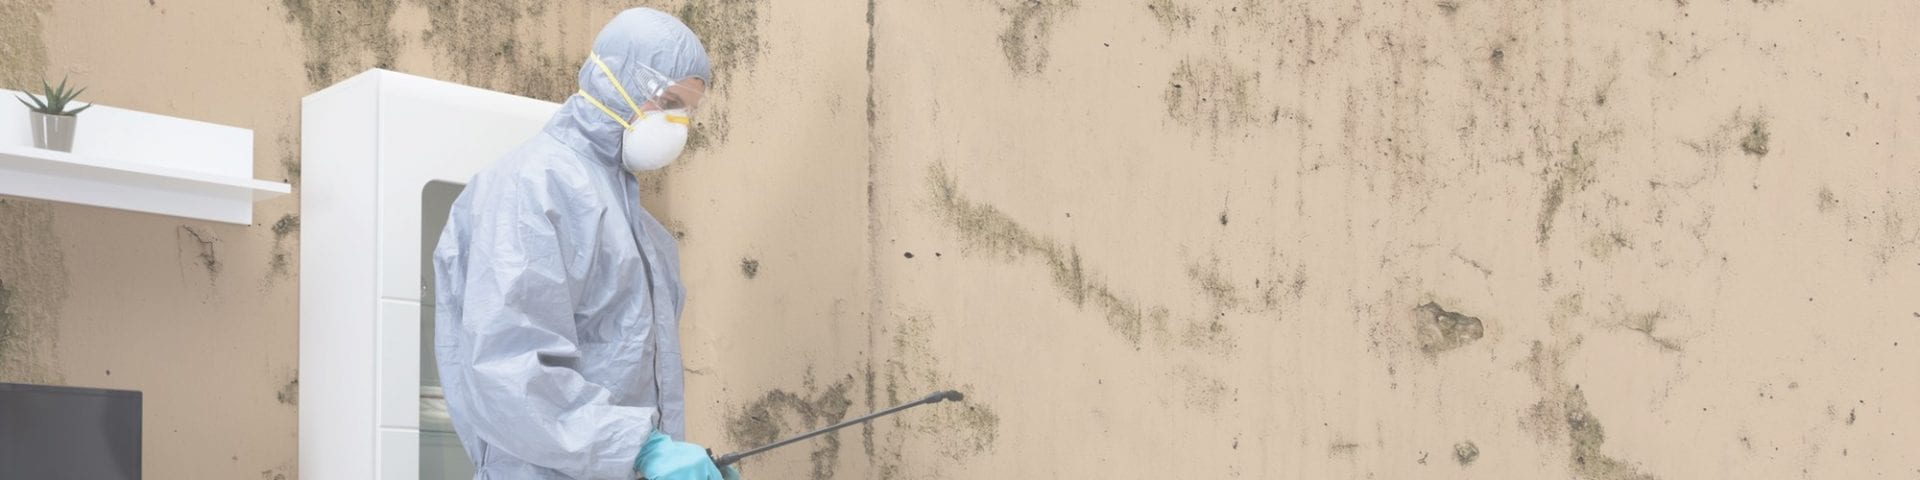 Controlling Mold Growth in Buildings: Prevention and Control Strategies